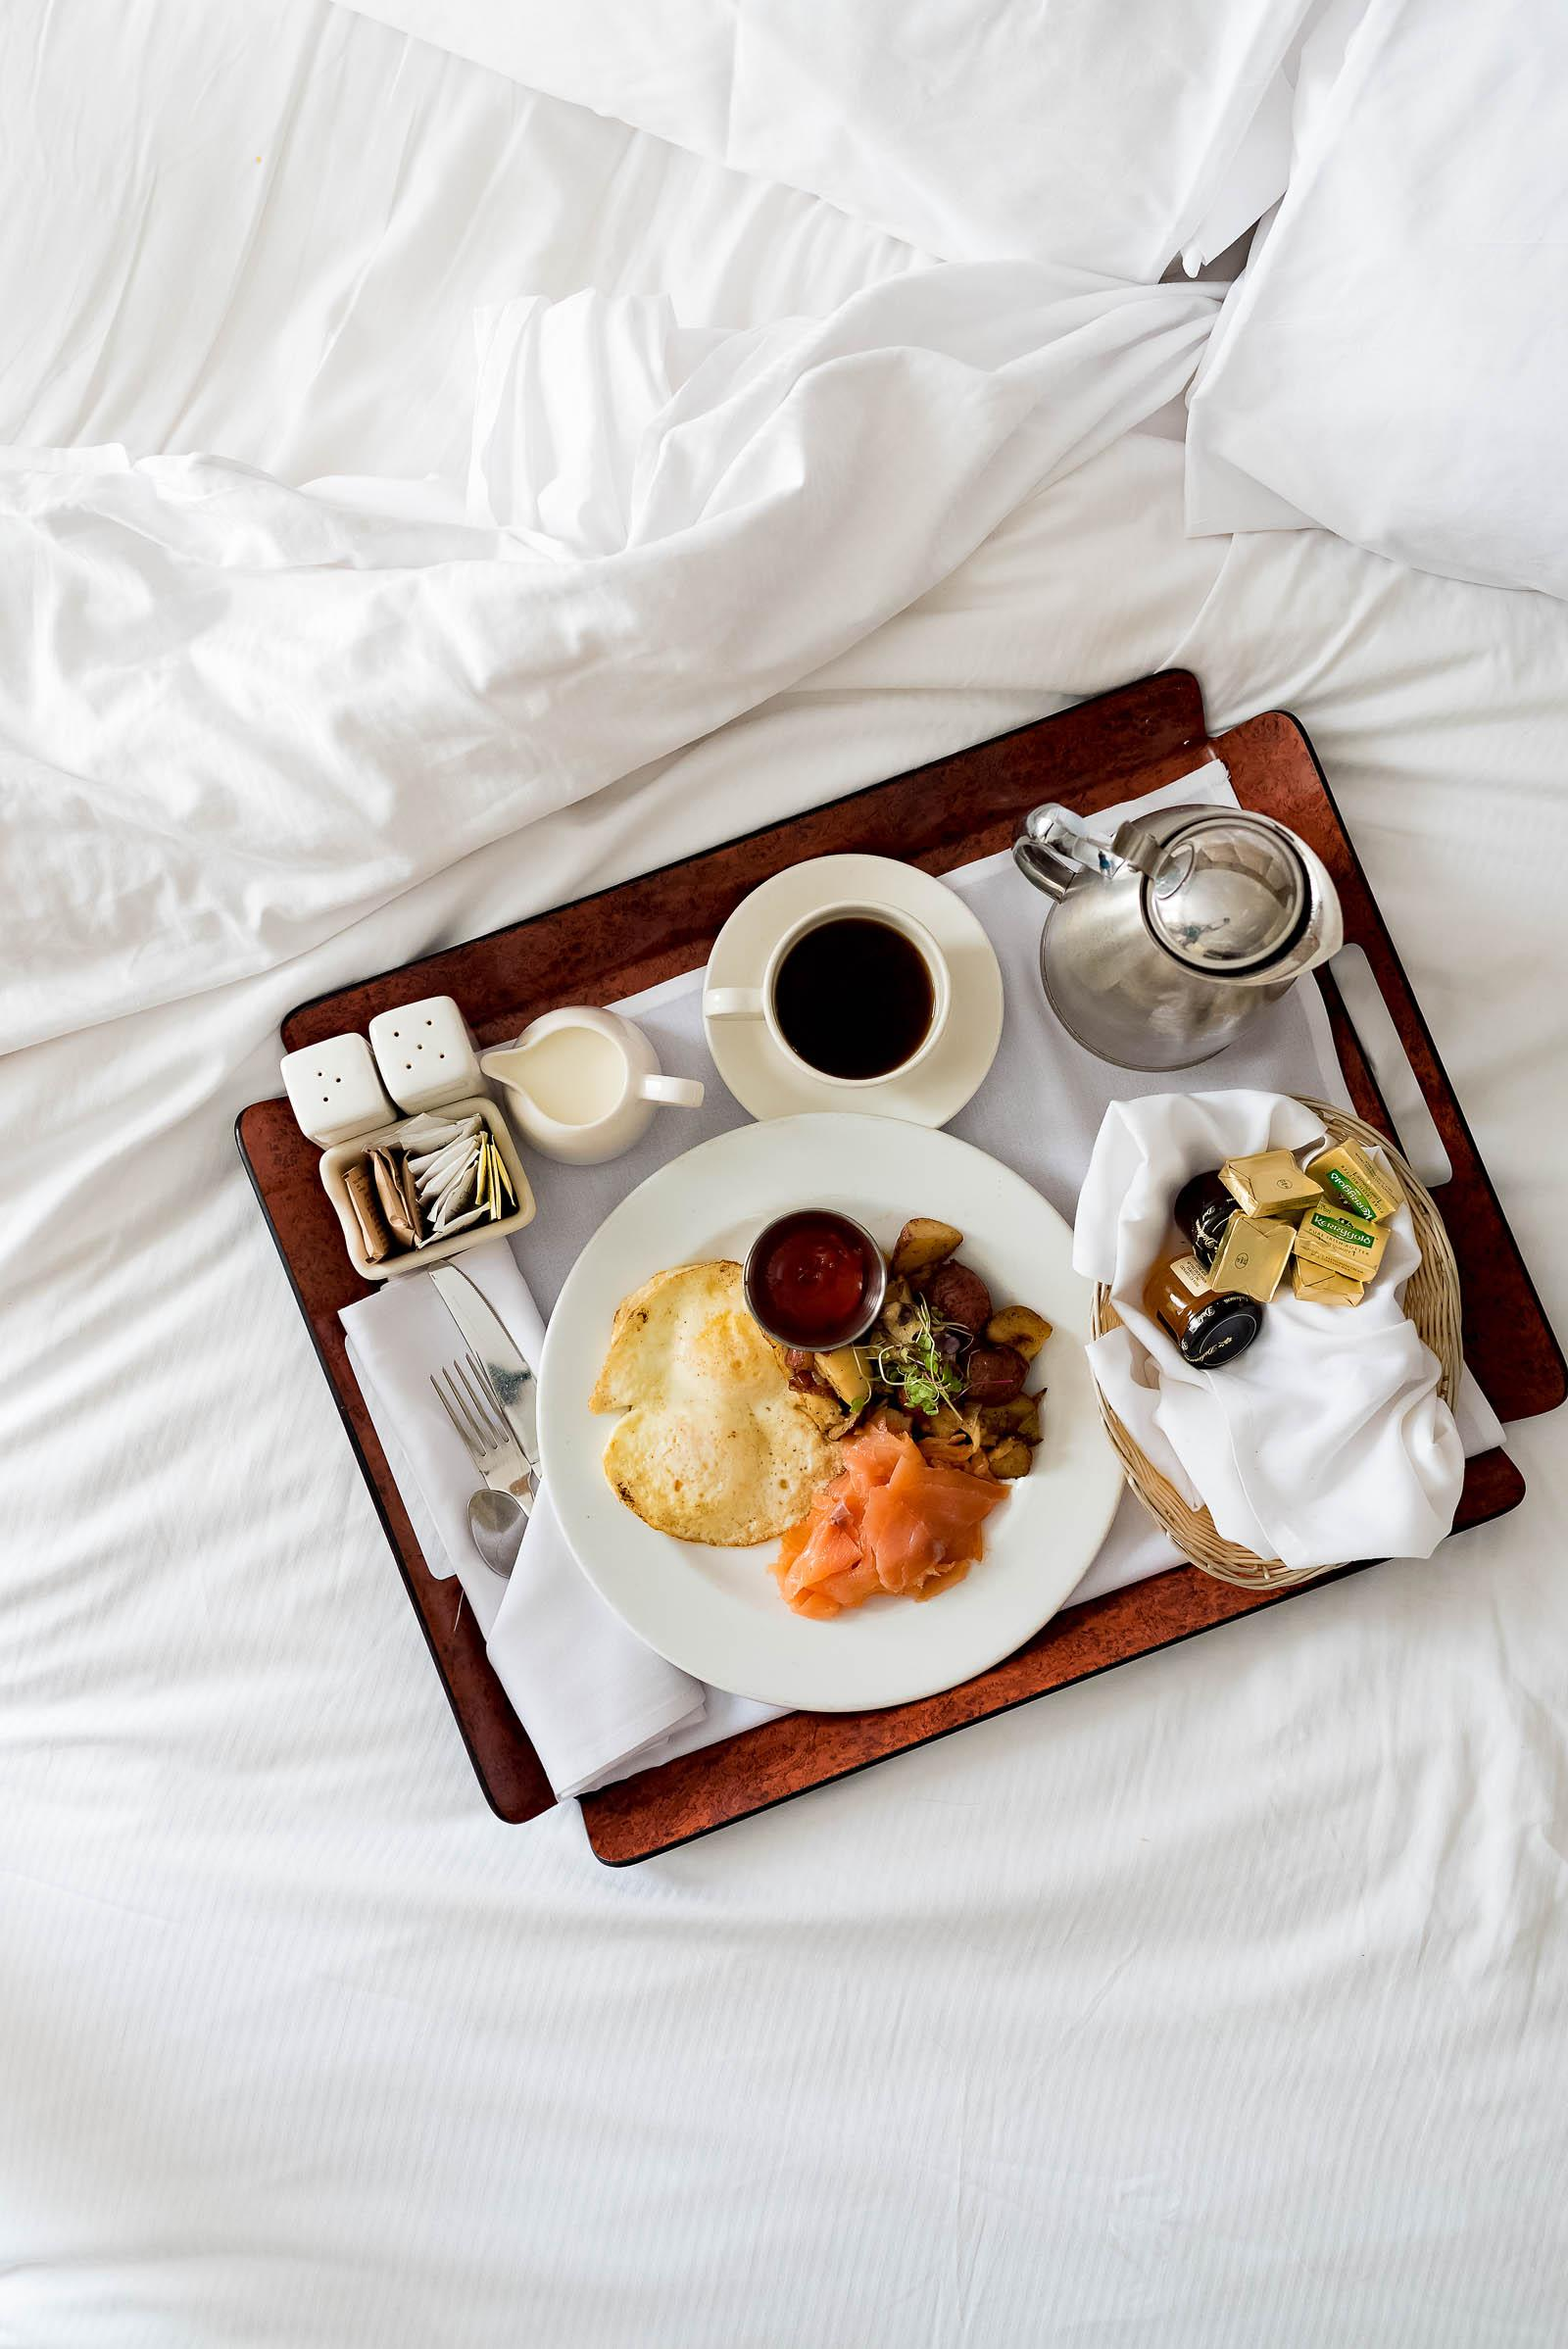 Fitzpatrick Hotel NYC Breakfast Room Service